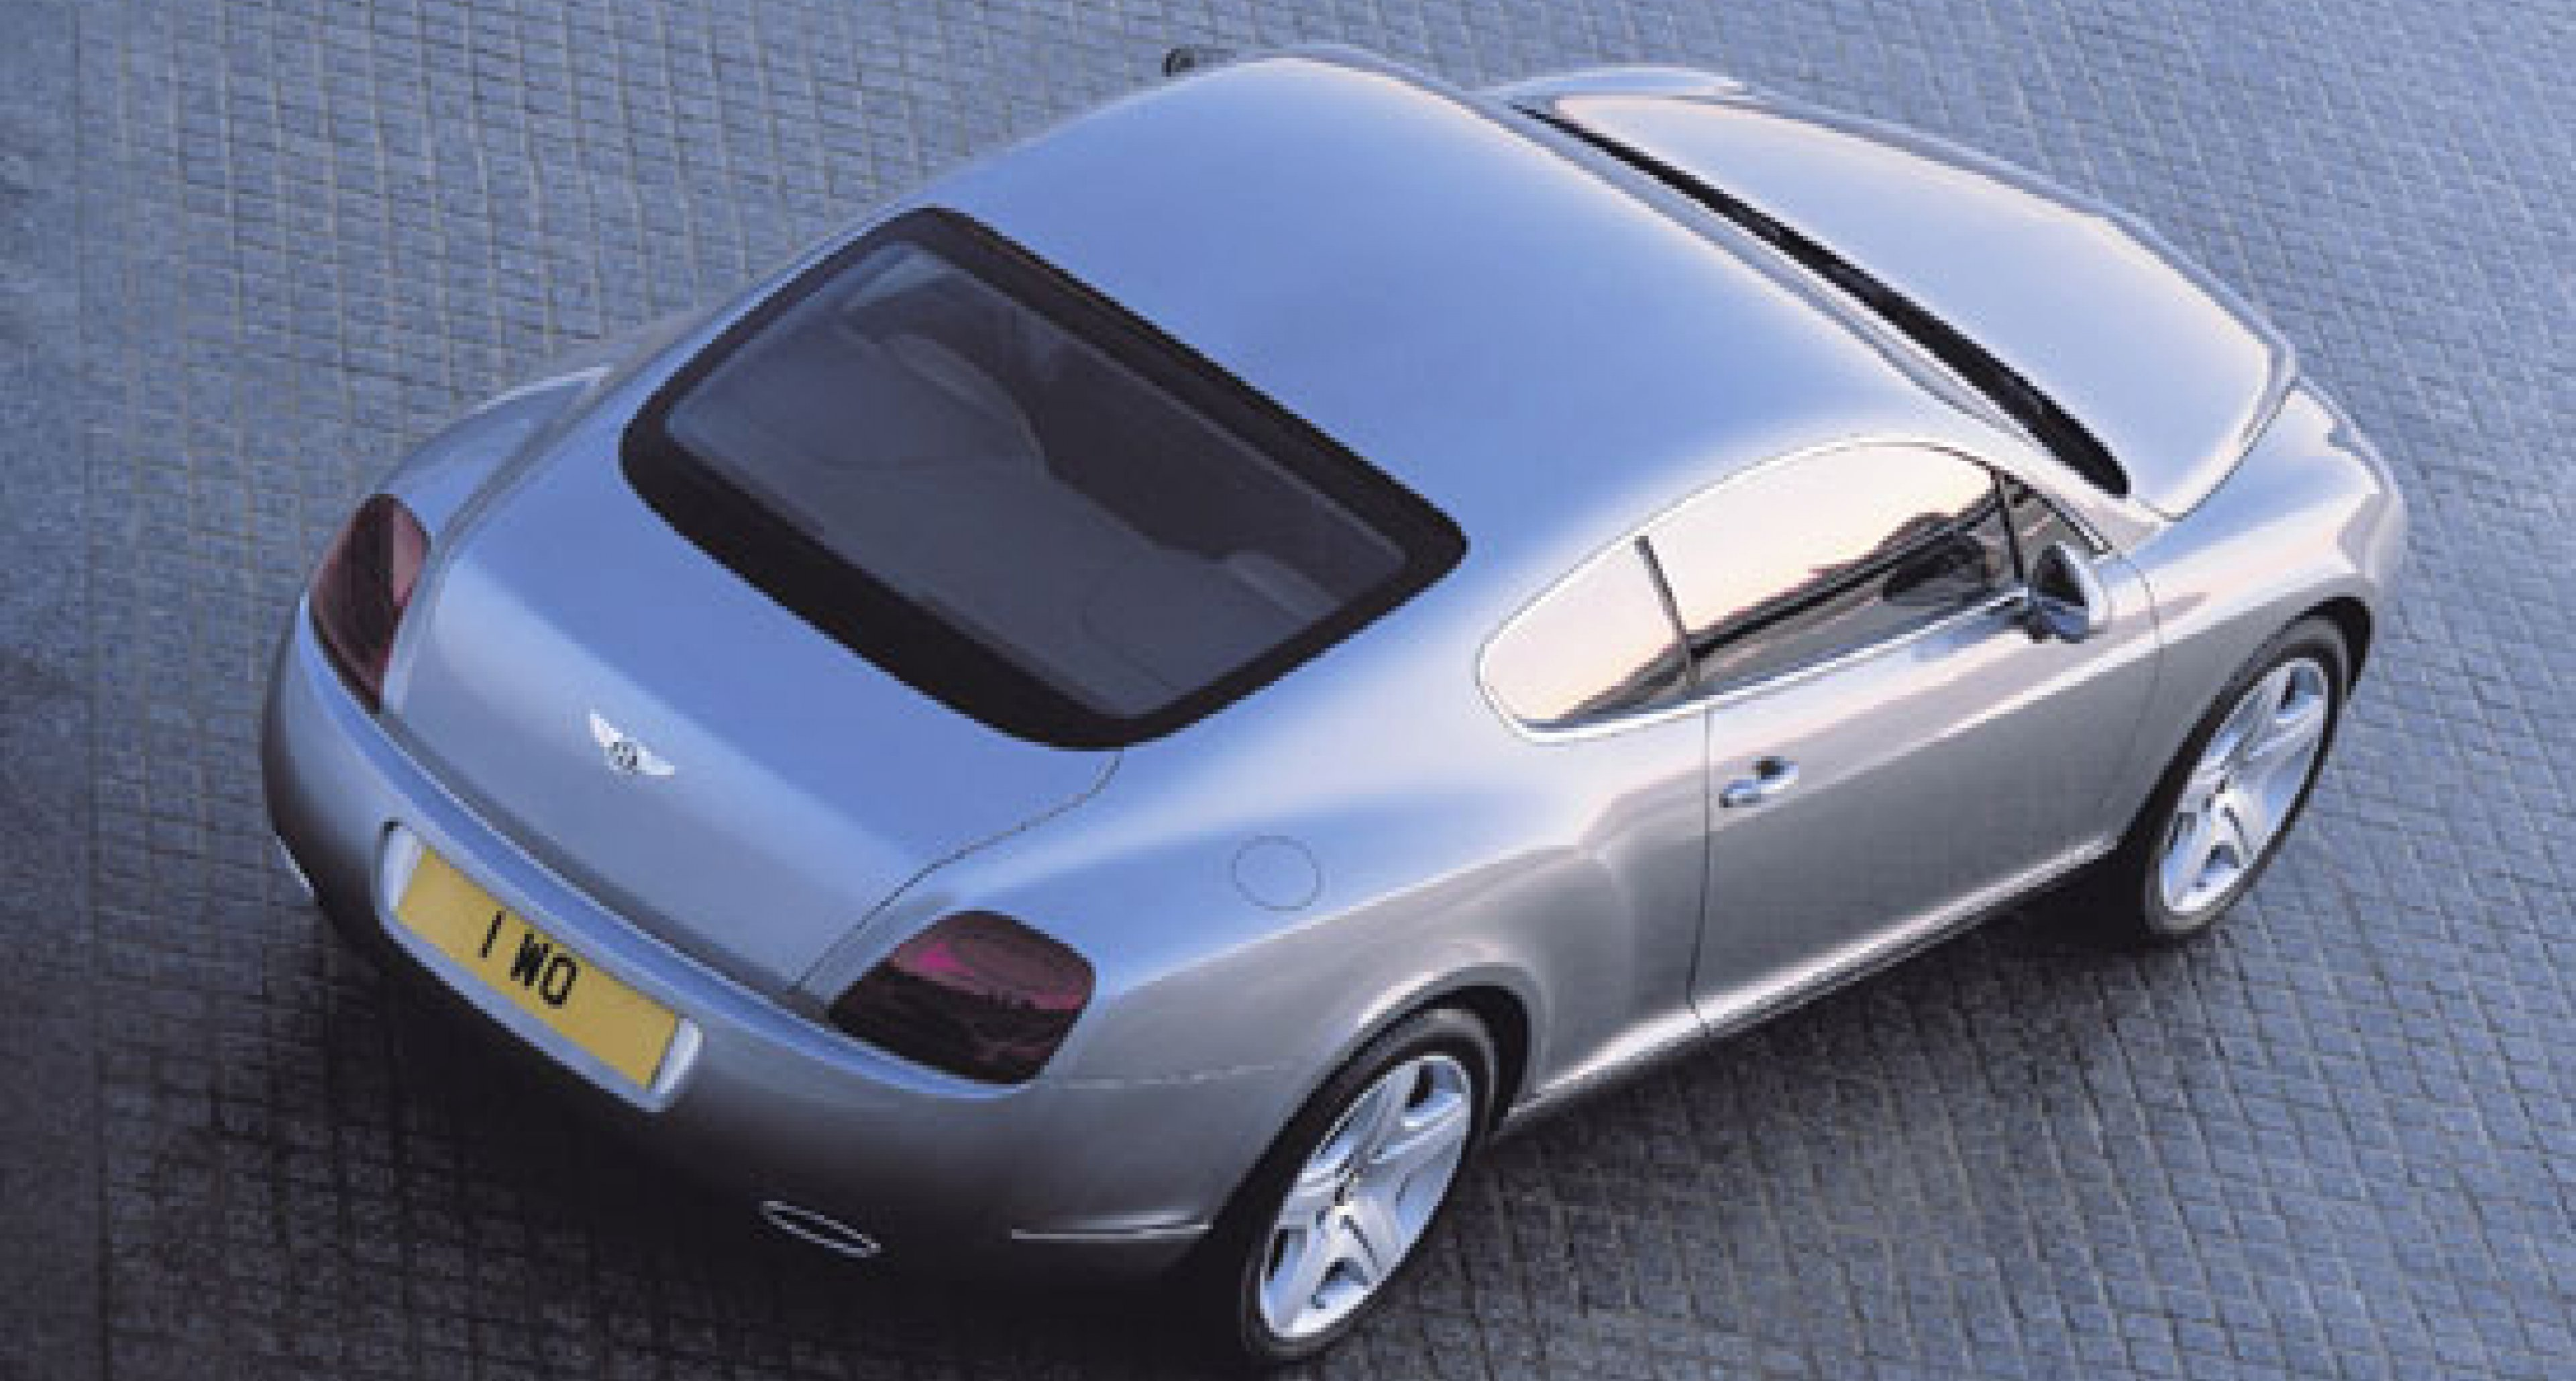 March 2003 - New Bentley Continental GT Prices confirmed